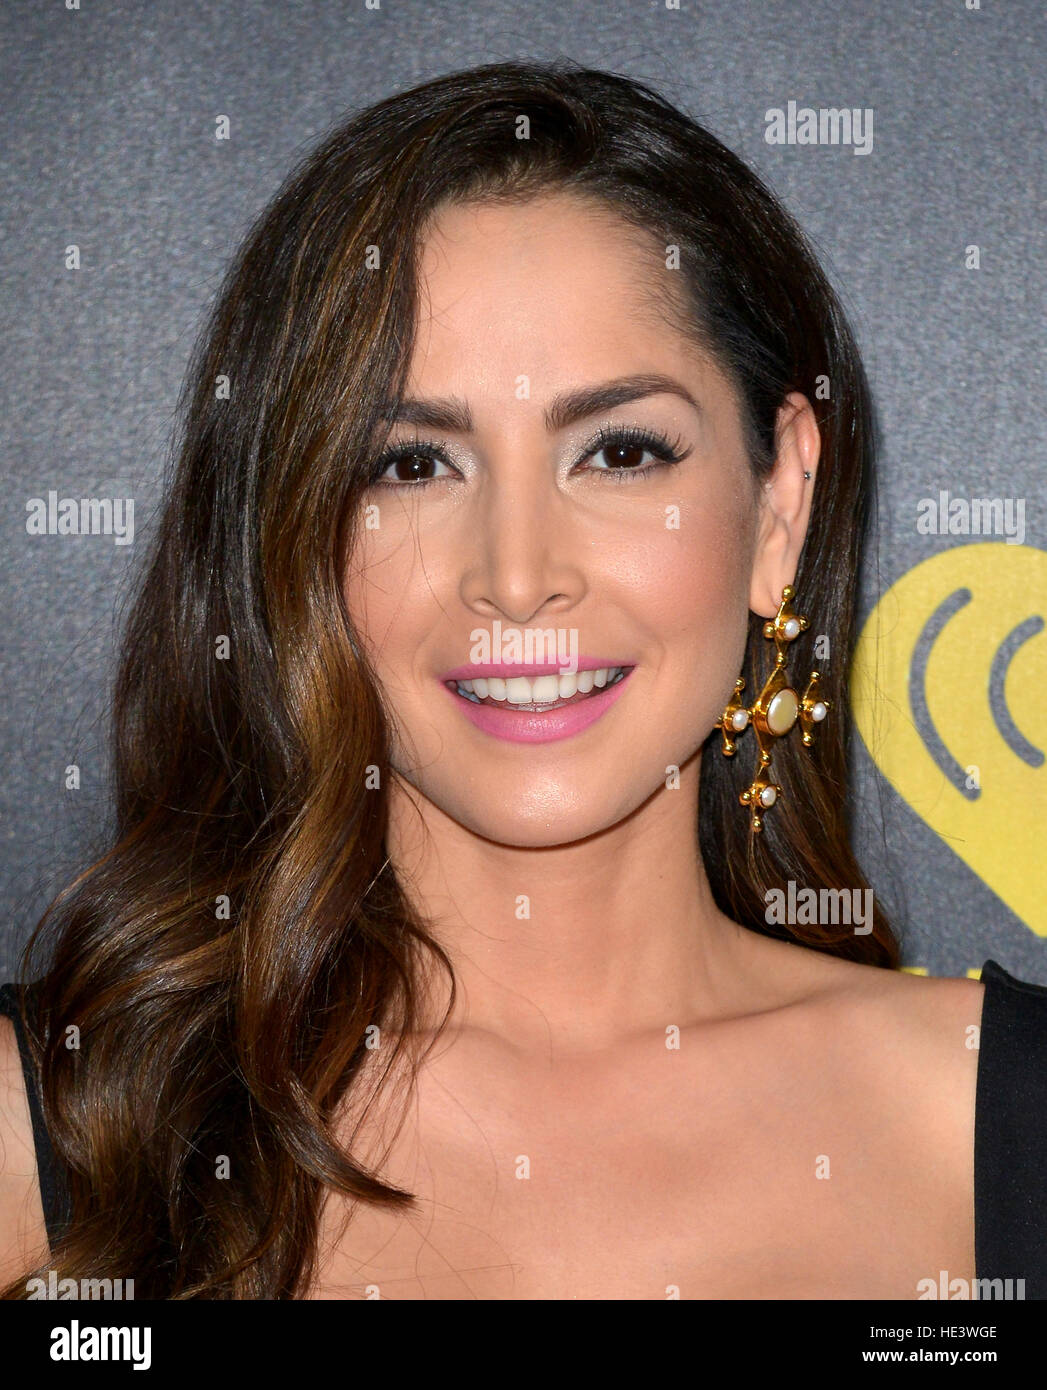 Download carmen villalobos wallpapers to your cell phone carmen - Stock Photo Iheart Radio Fiesta Latina 2016 At American Airlines Arena Arrivals Featuring Carmen Villalobos Where Miami Florida United States When